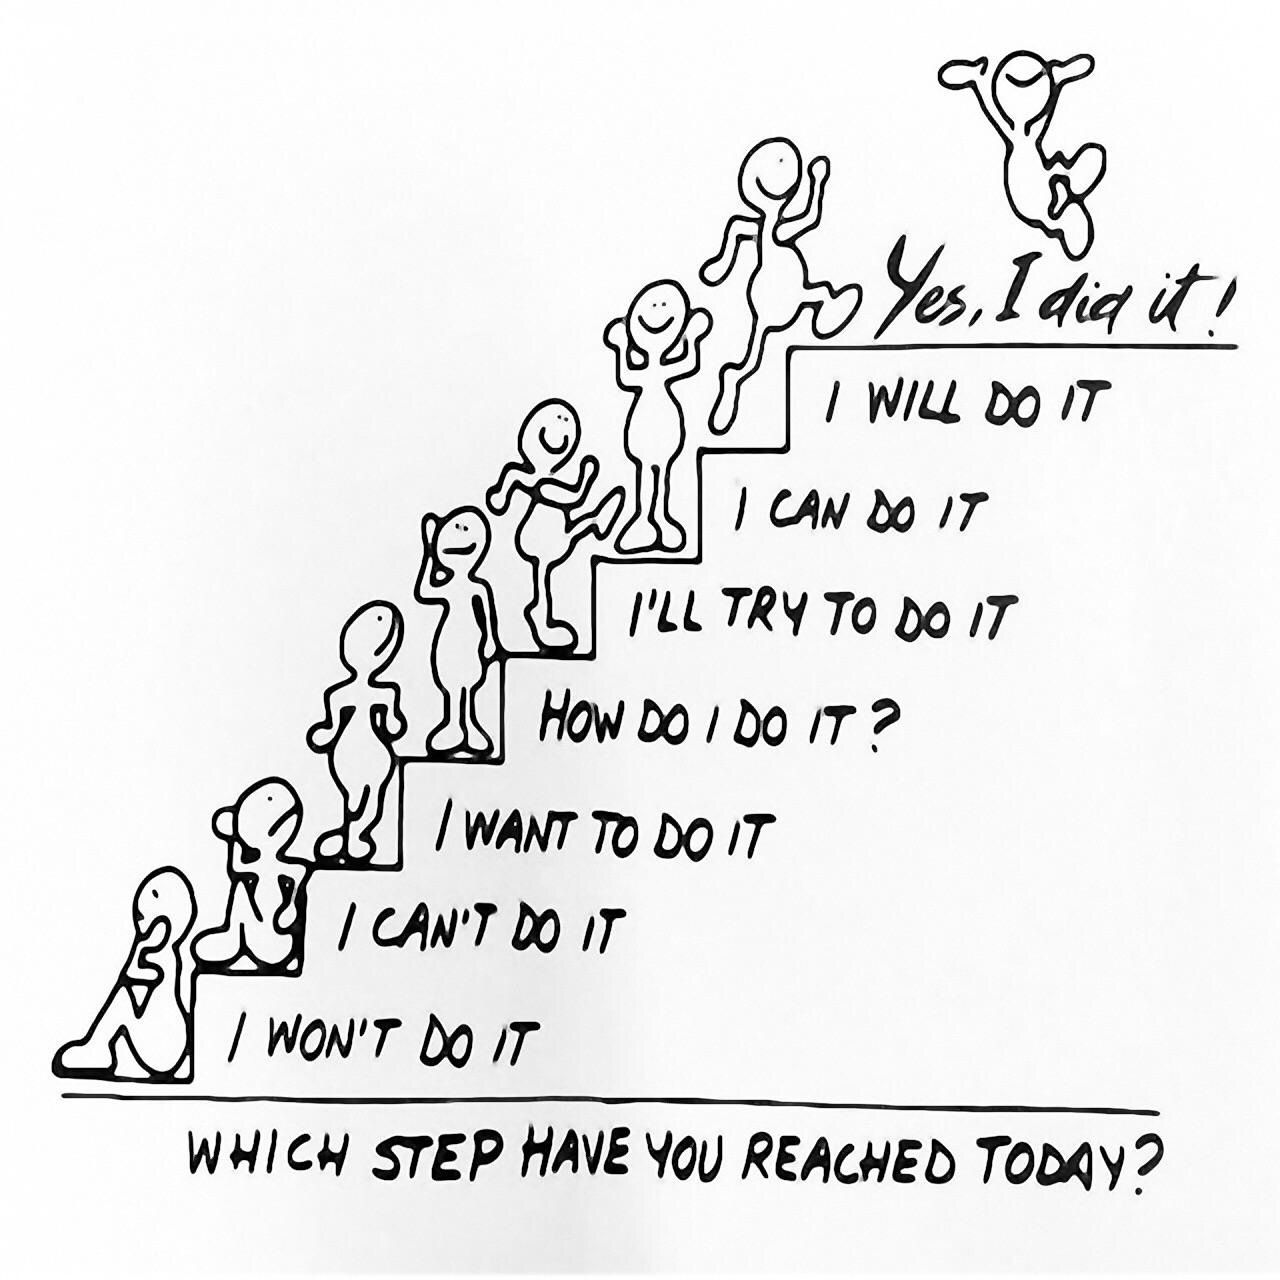 [Image] Which step have you reached today?